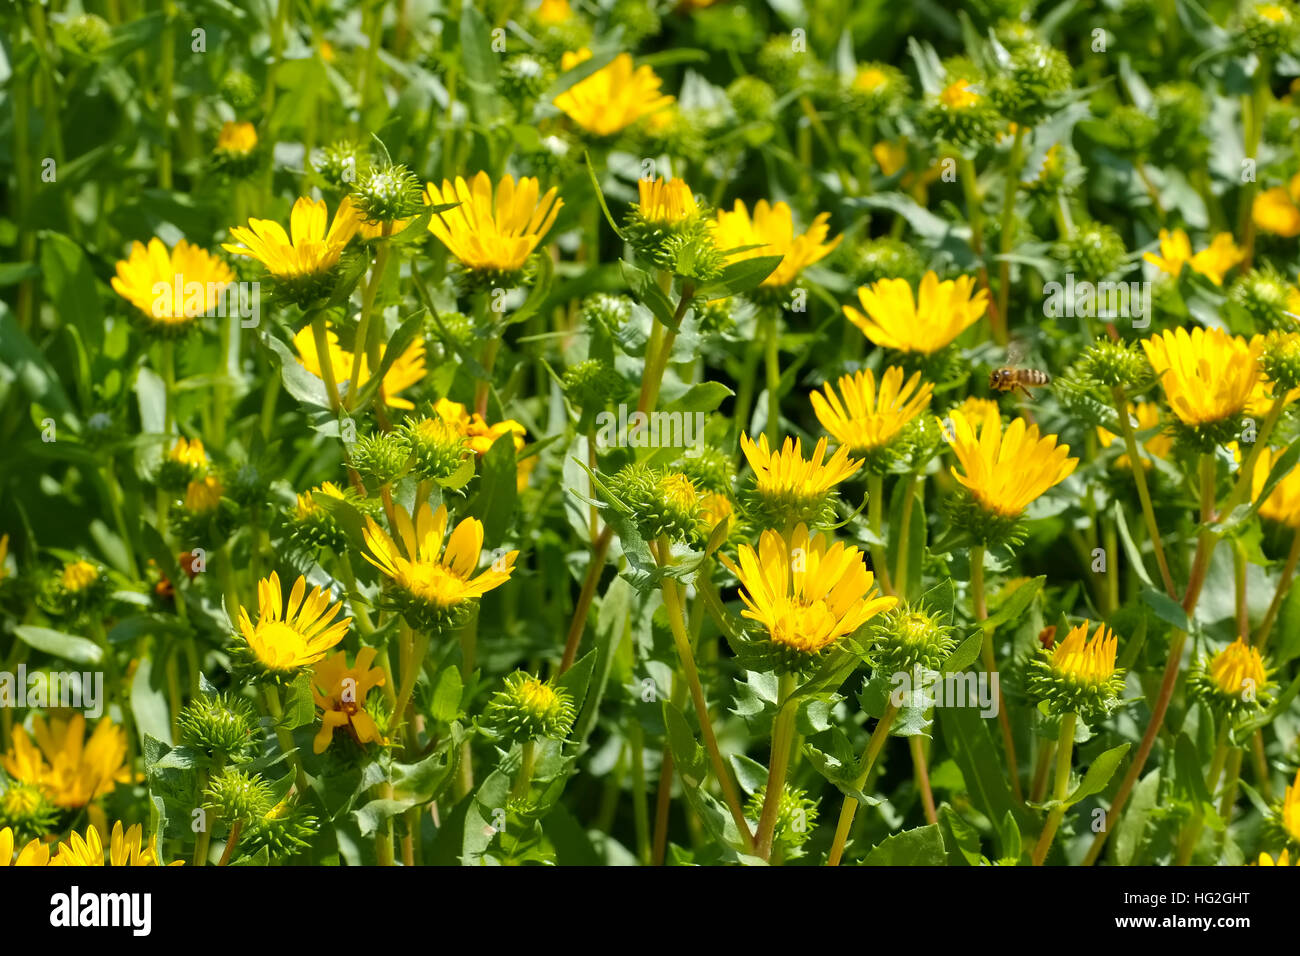 die Heilpflanze Grindelie, Grindelia robusta - the herbal plant gumweed, Grindelia robusta - Stock Image